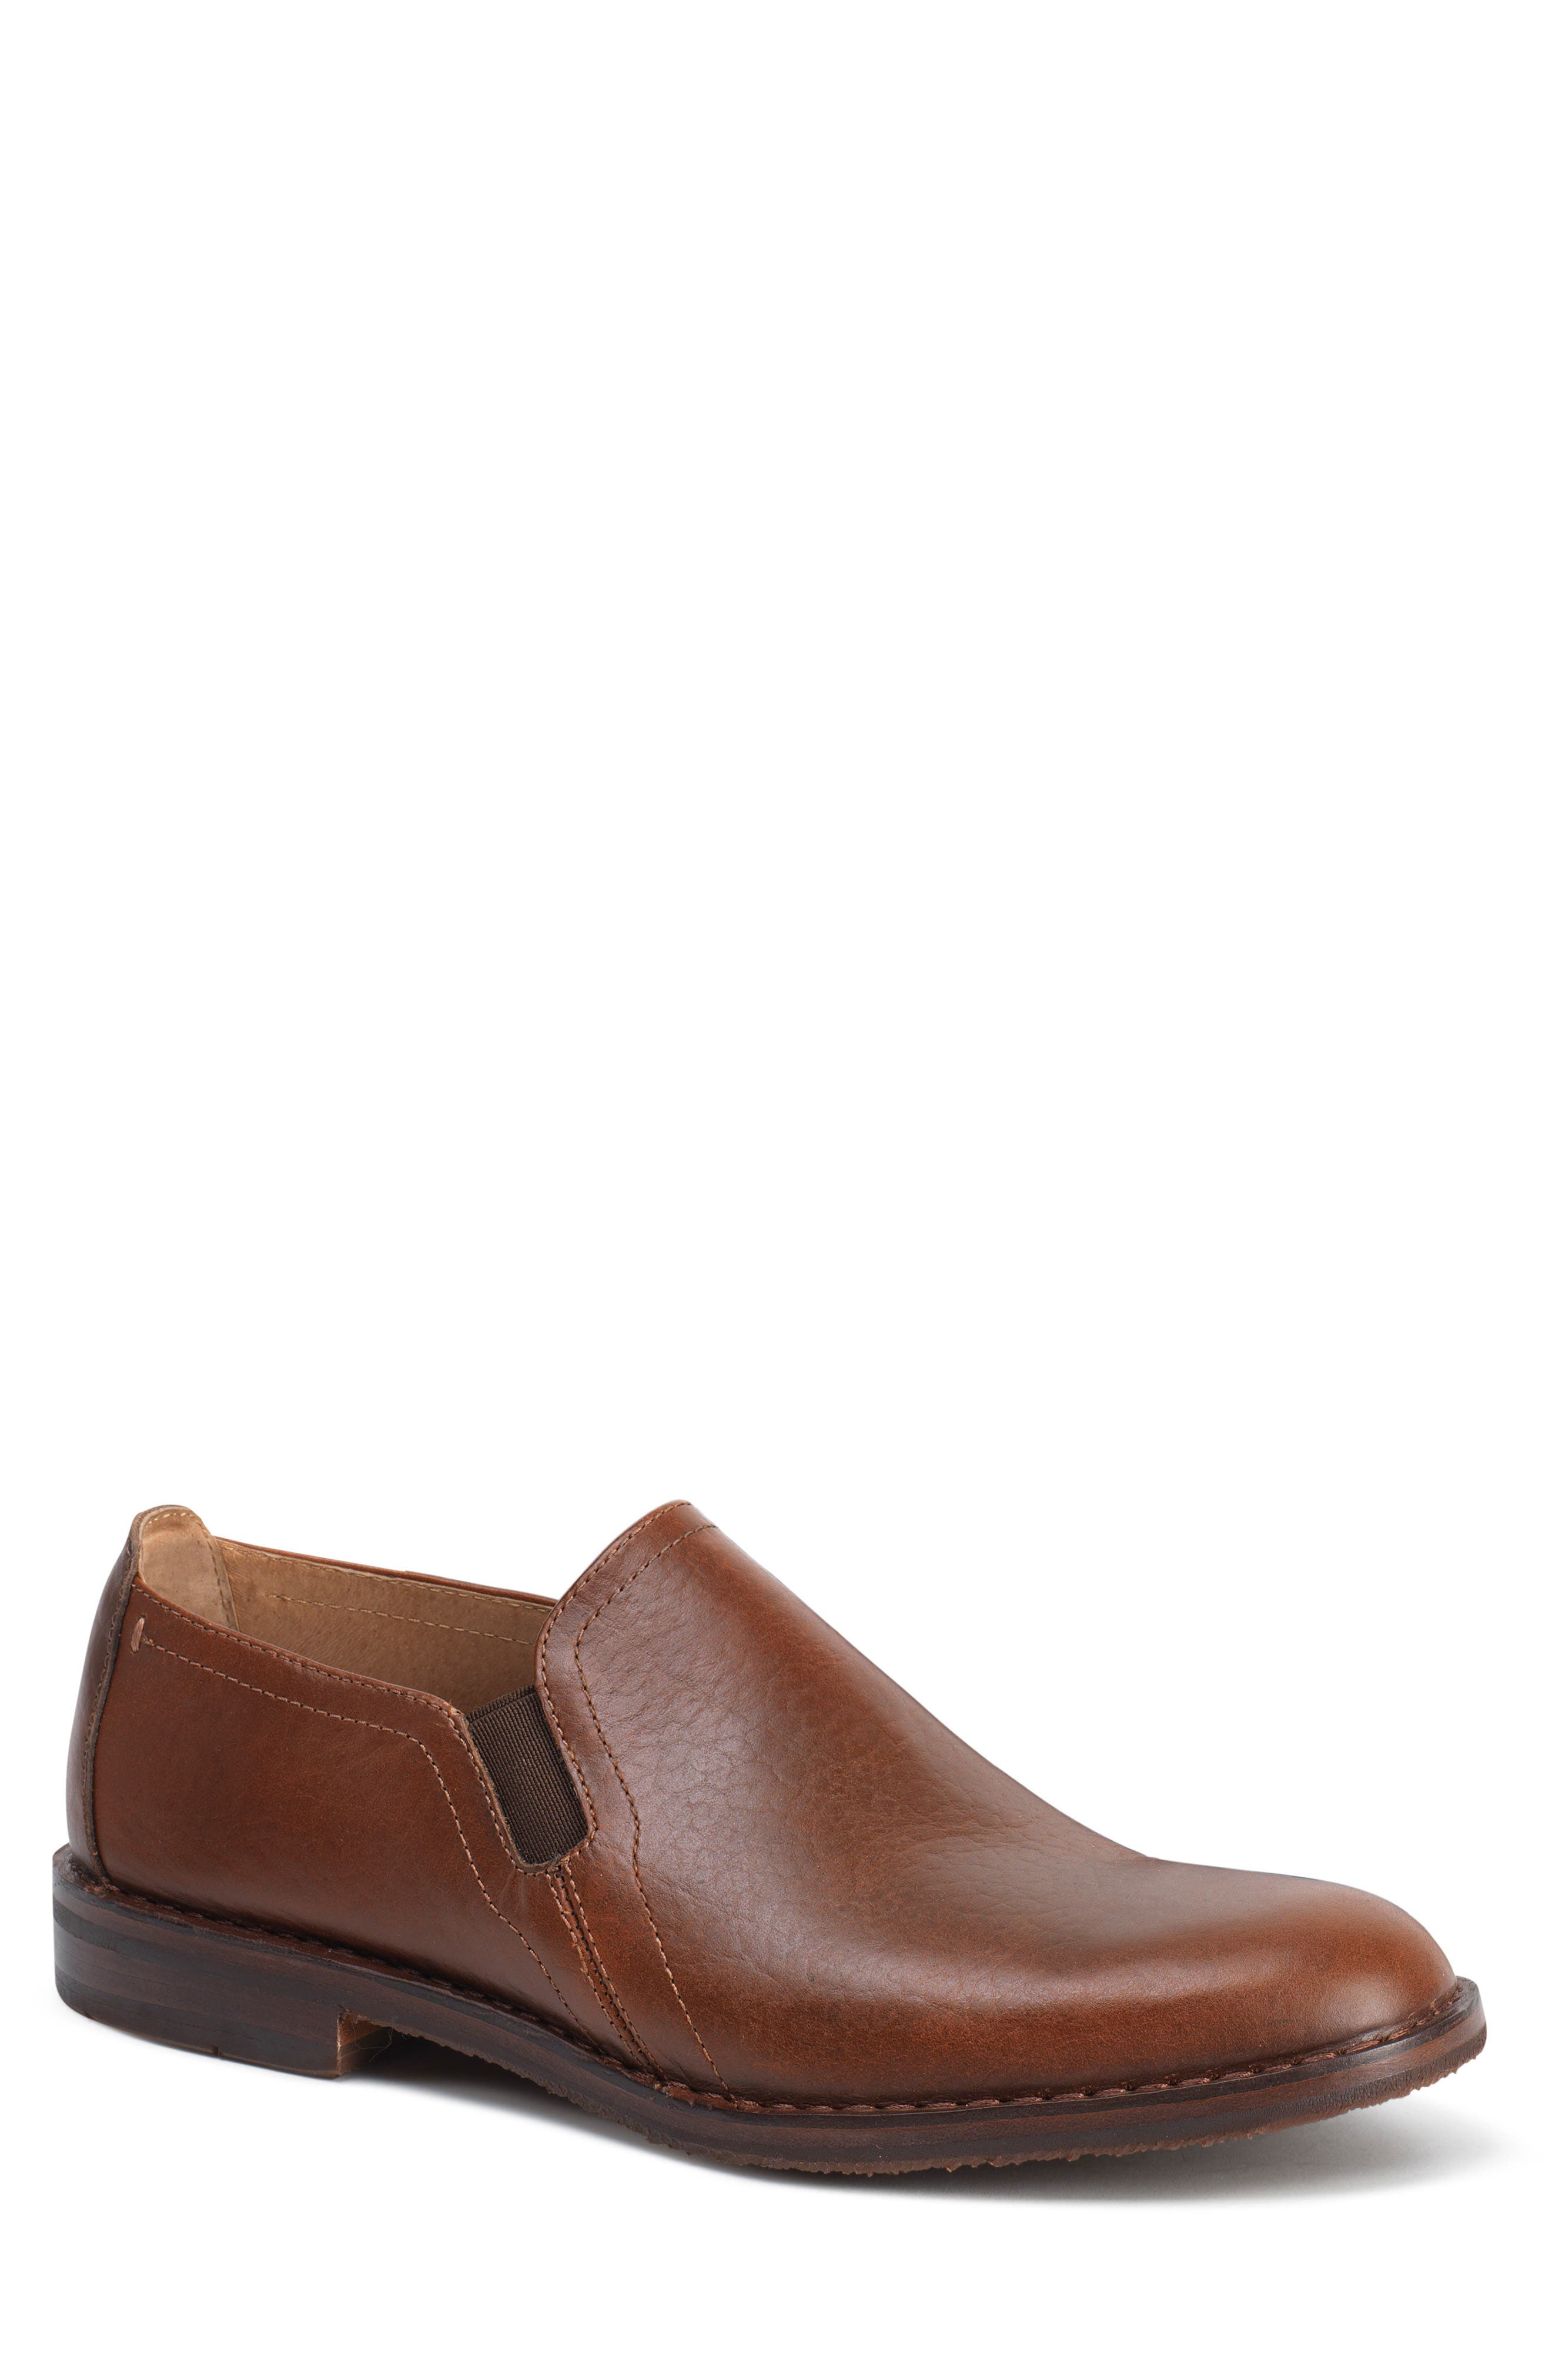 Main Image - Trask 'Blaine' Venetian Loafer (Men)